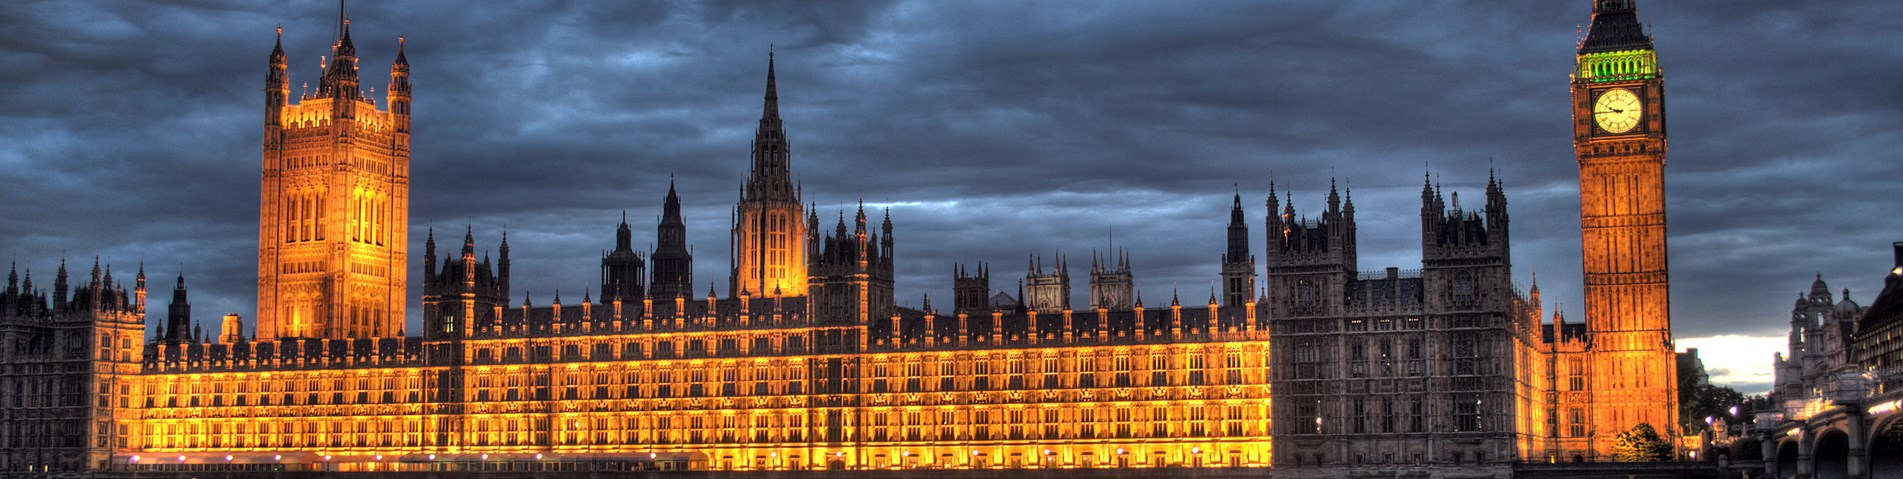 House of Parliament.jpg